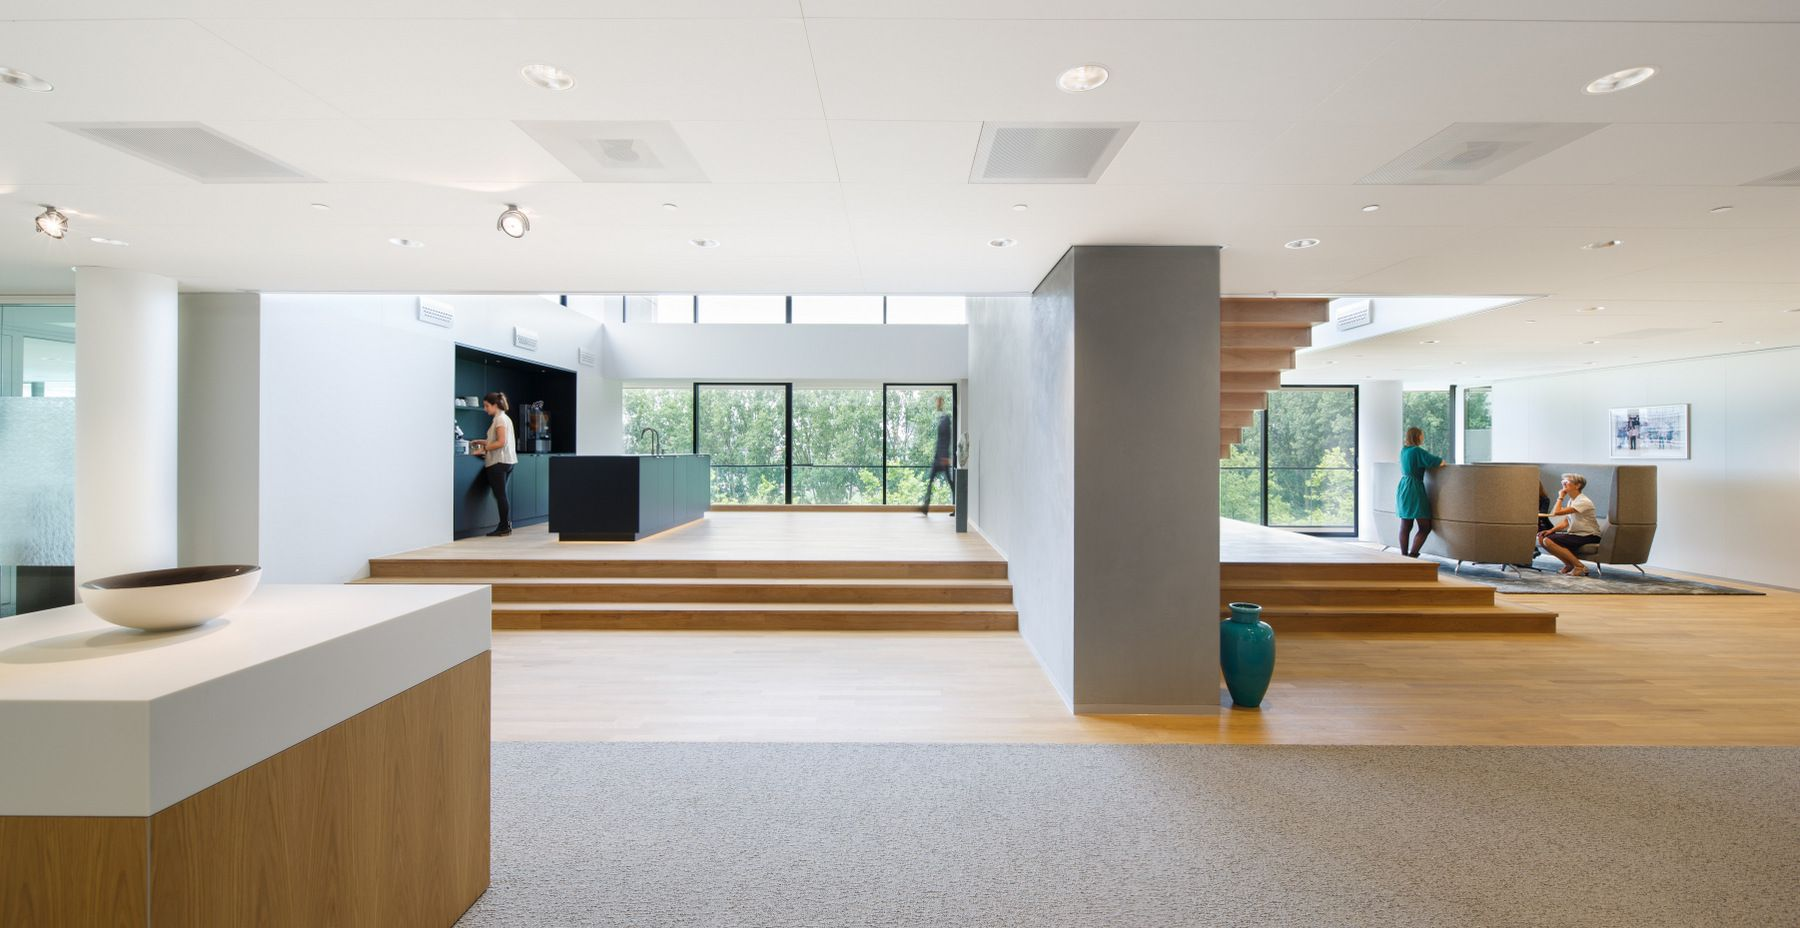 Egon zehnder office by fokkema partners